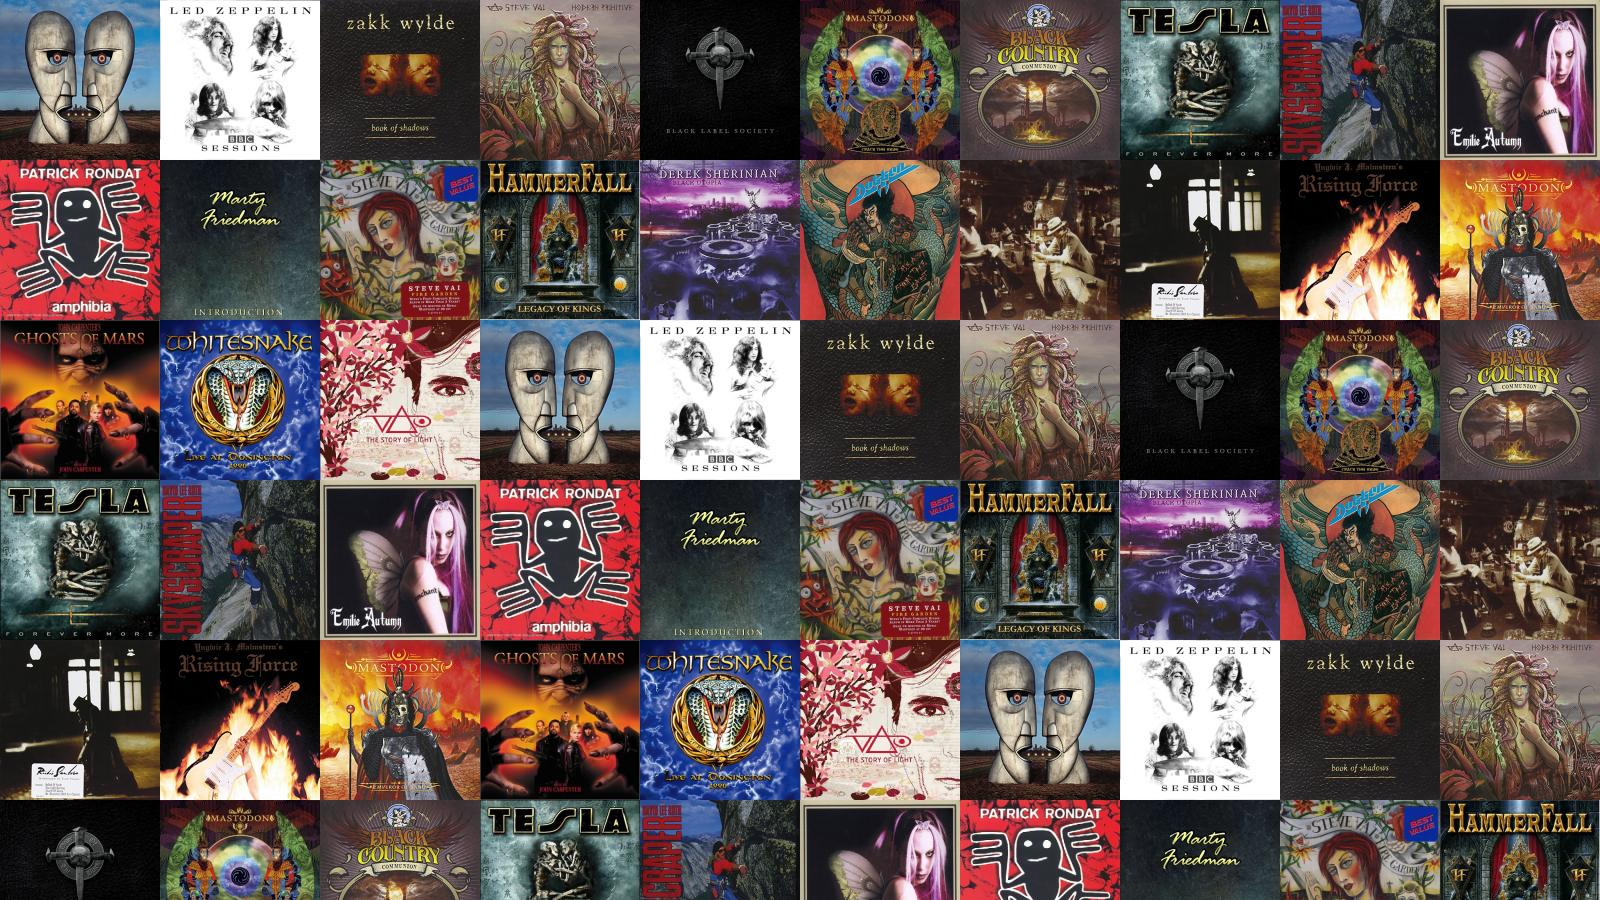 Download This Free Wallpaper With Images Of Pink Floyd The Division Bell Led Zeppelin Bbc Session Zakk Wylde Book Shadows